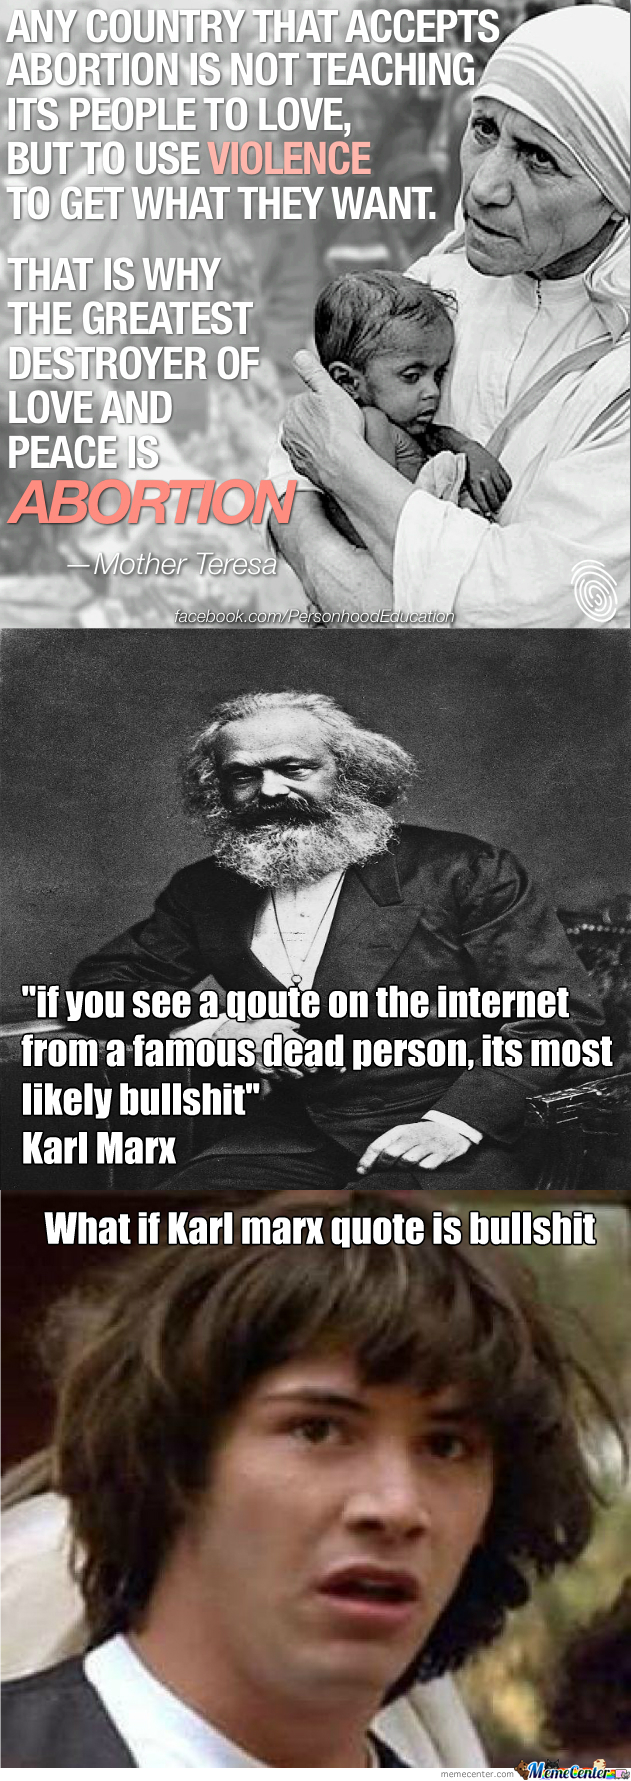 [RMX] Karl Marx Was Ahead Of His Time, Eh?